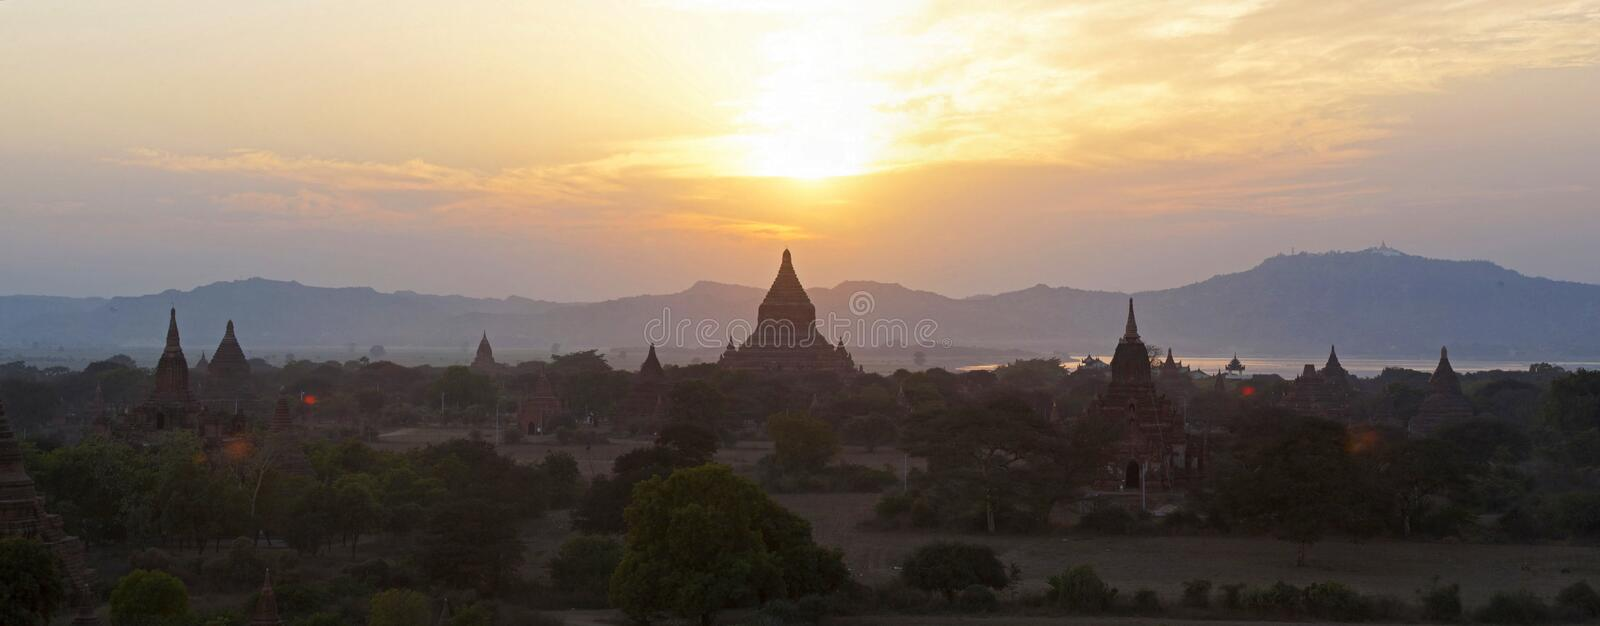 Download Bagan Temples at Sunset stock image. Image of buildings - 29844819